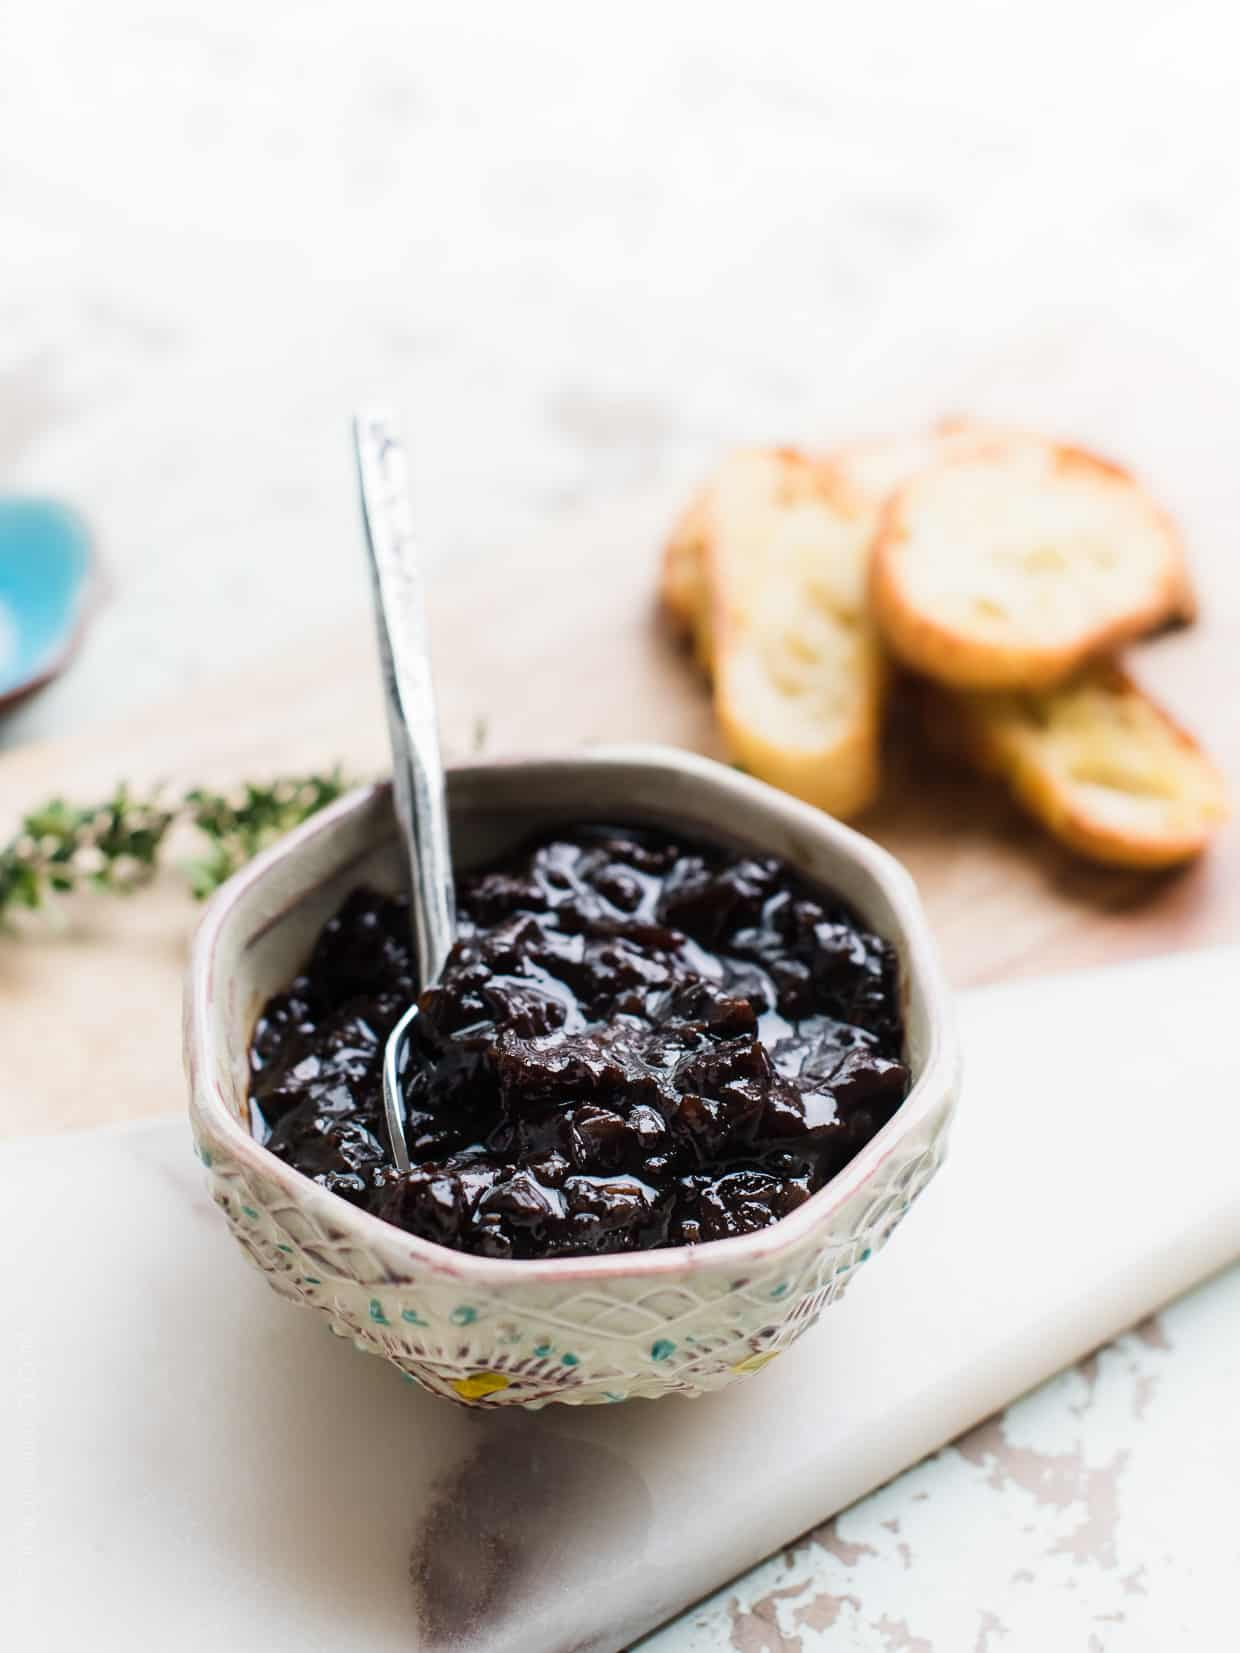 Bowl of prunes ready to be used to make Crostini with Gorgonzola and Prune Chutney.